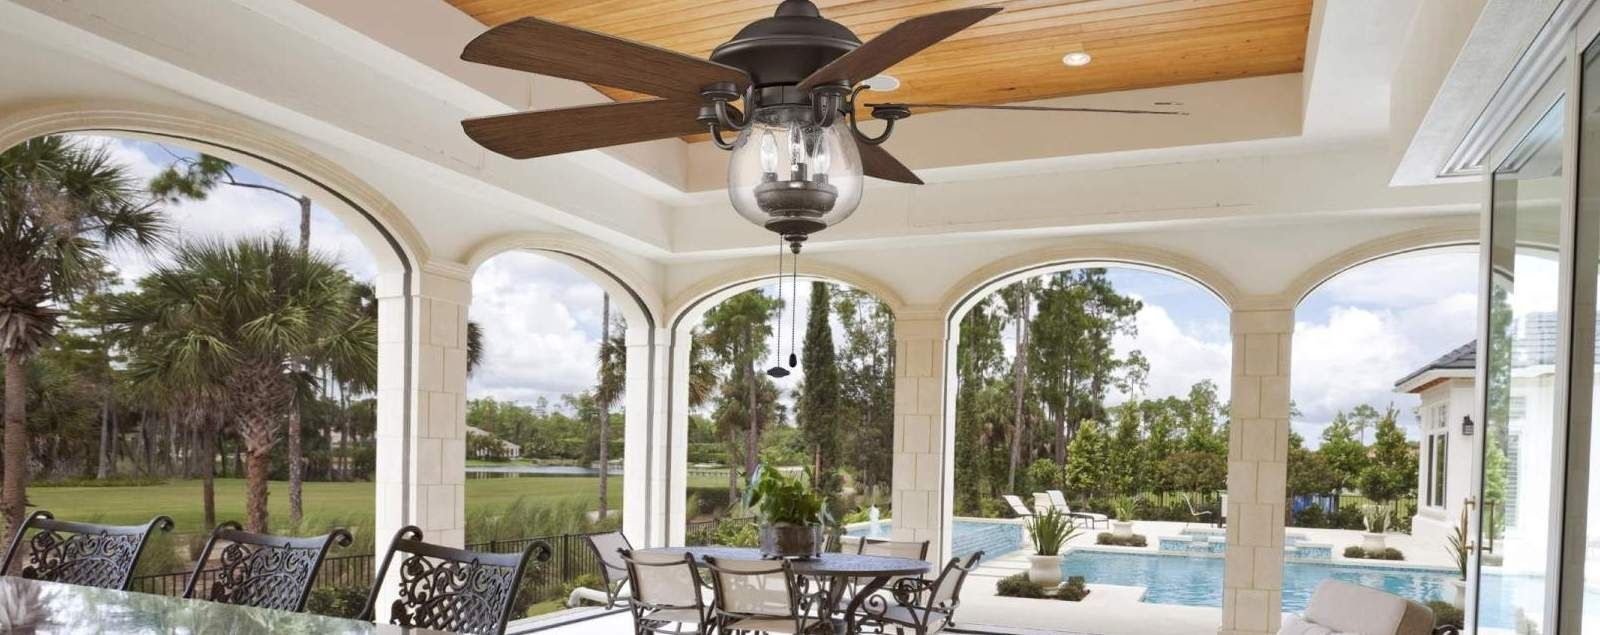 Metal Outdoor Ceiling Fans With Light Pertaining To Well Known Outdoor Ceiling Fans – Shop Wet, Dry, And Damp Rated Outdoor Fans (View 19 of 20)